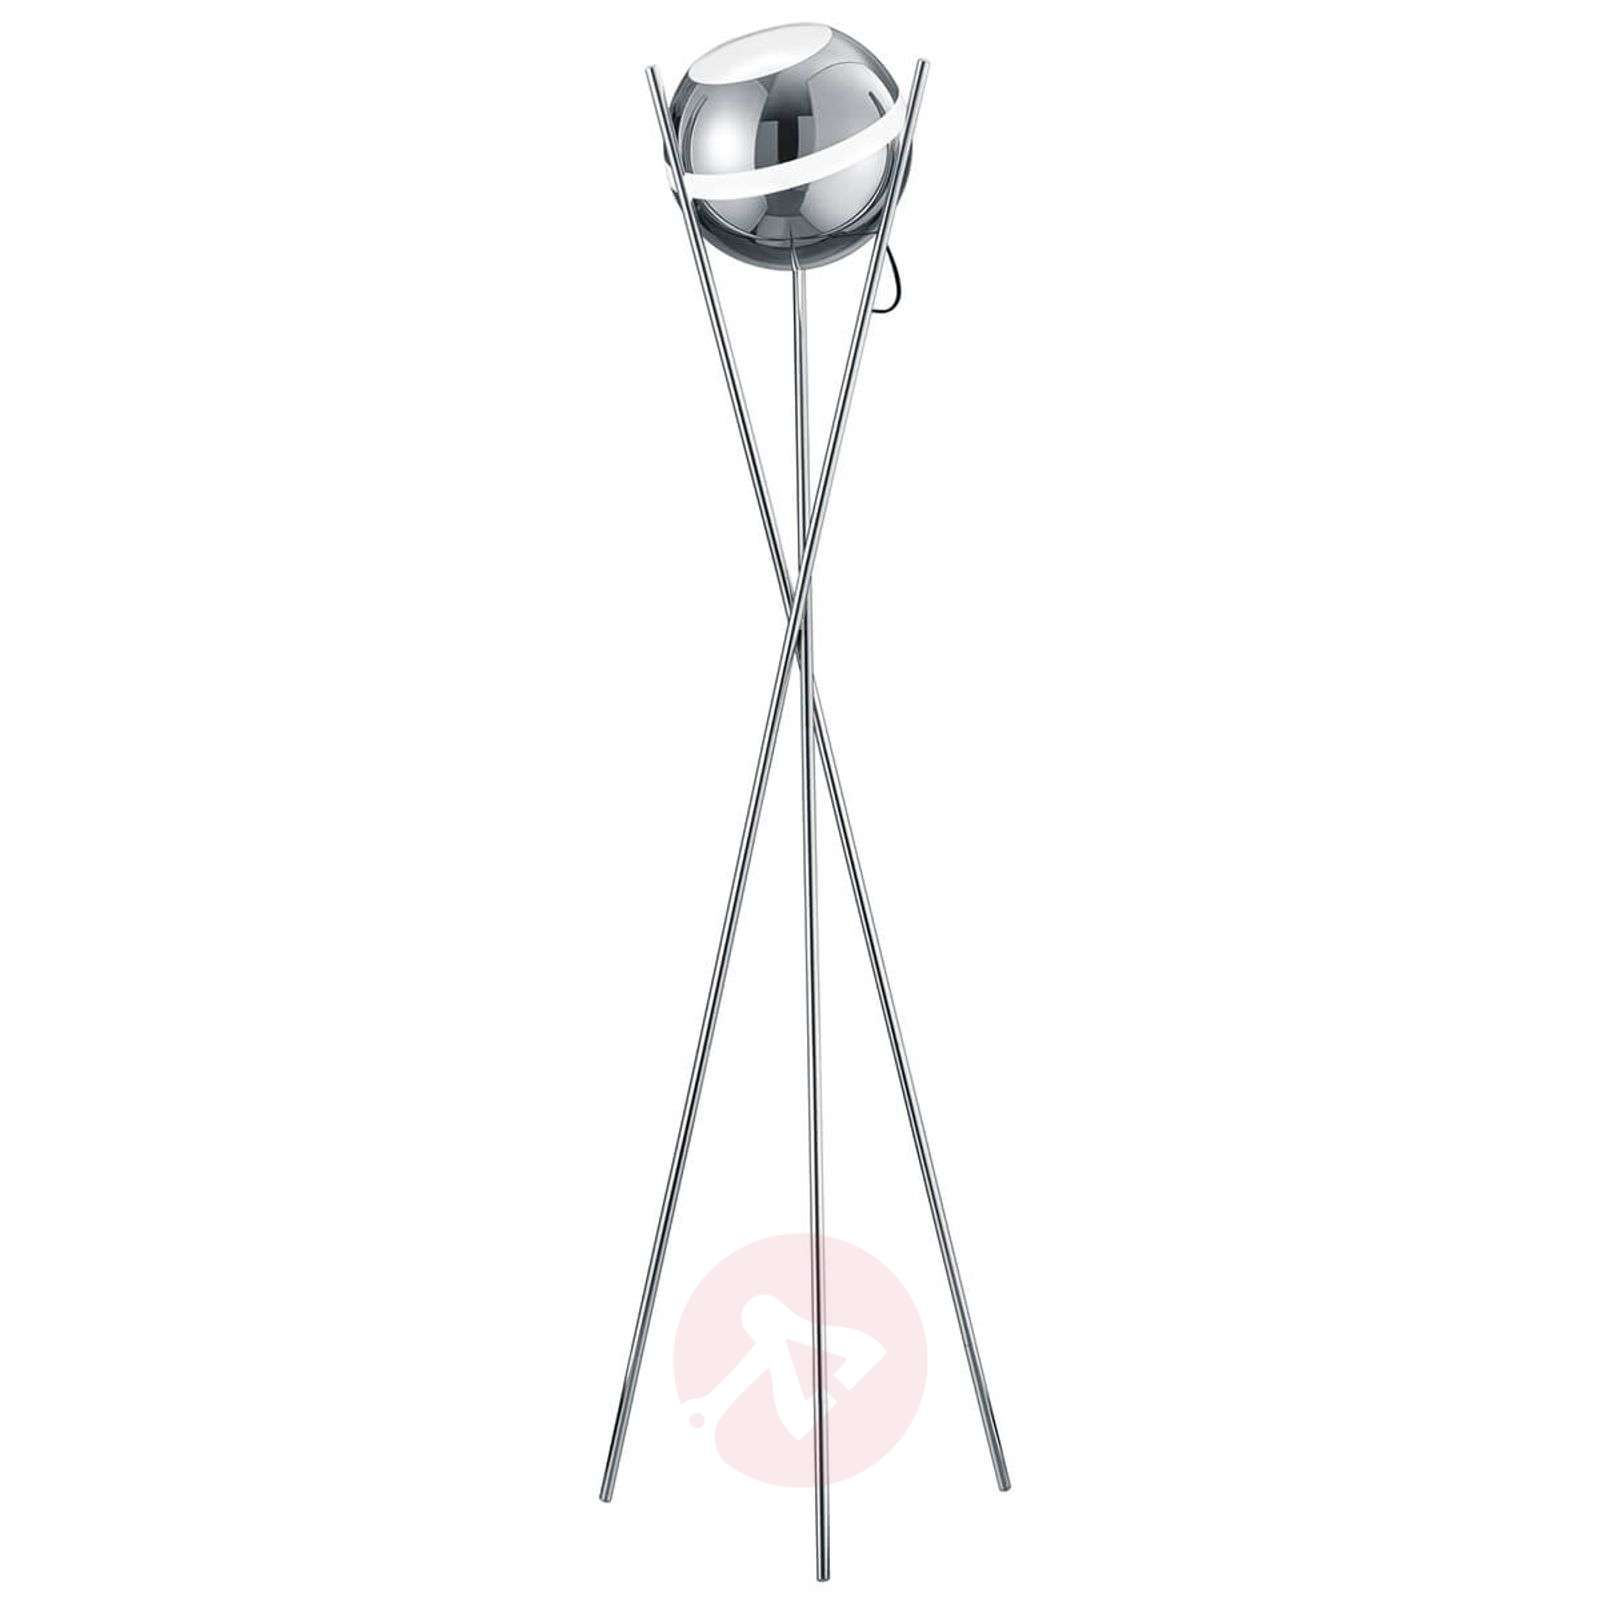 With Switchdim function Balloon LED floor lamp-9005397-01